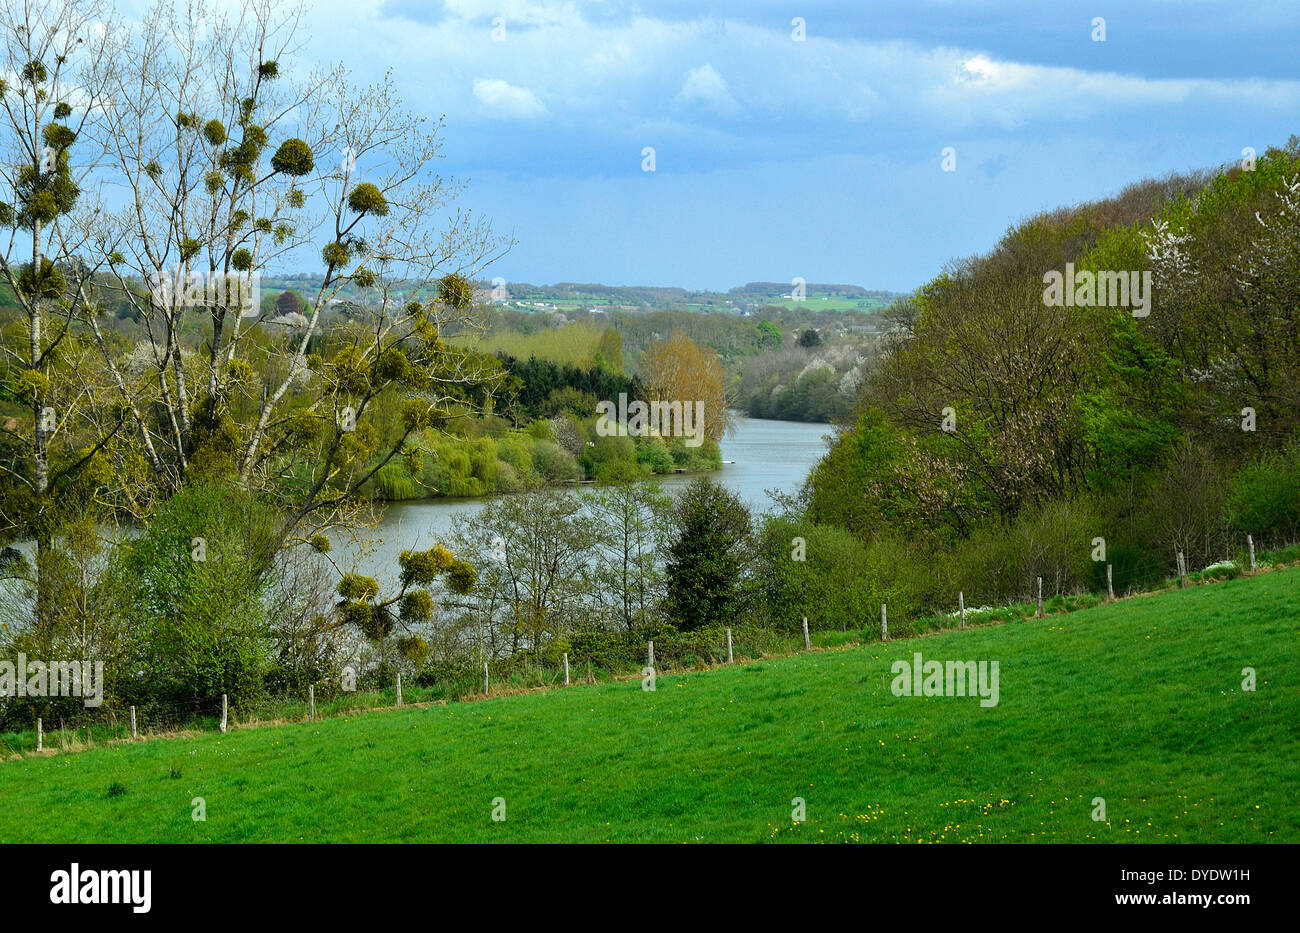 Mayenne River in the spring landscape of northern Mayenne, wooded banks (poplars, willows, pines, wild cherry, oaks). Stock Photo